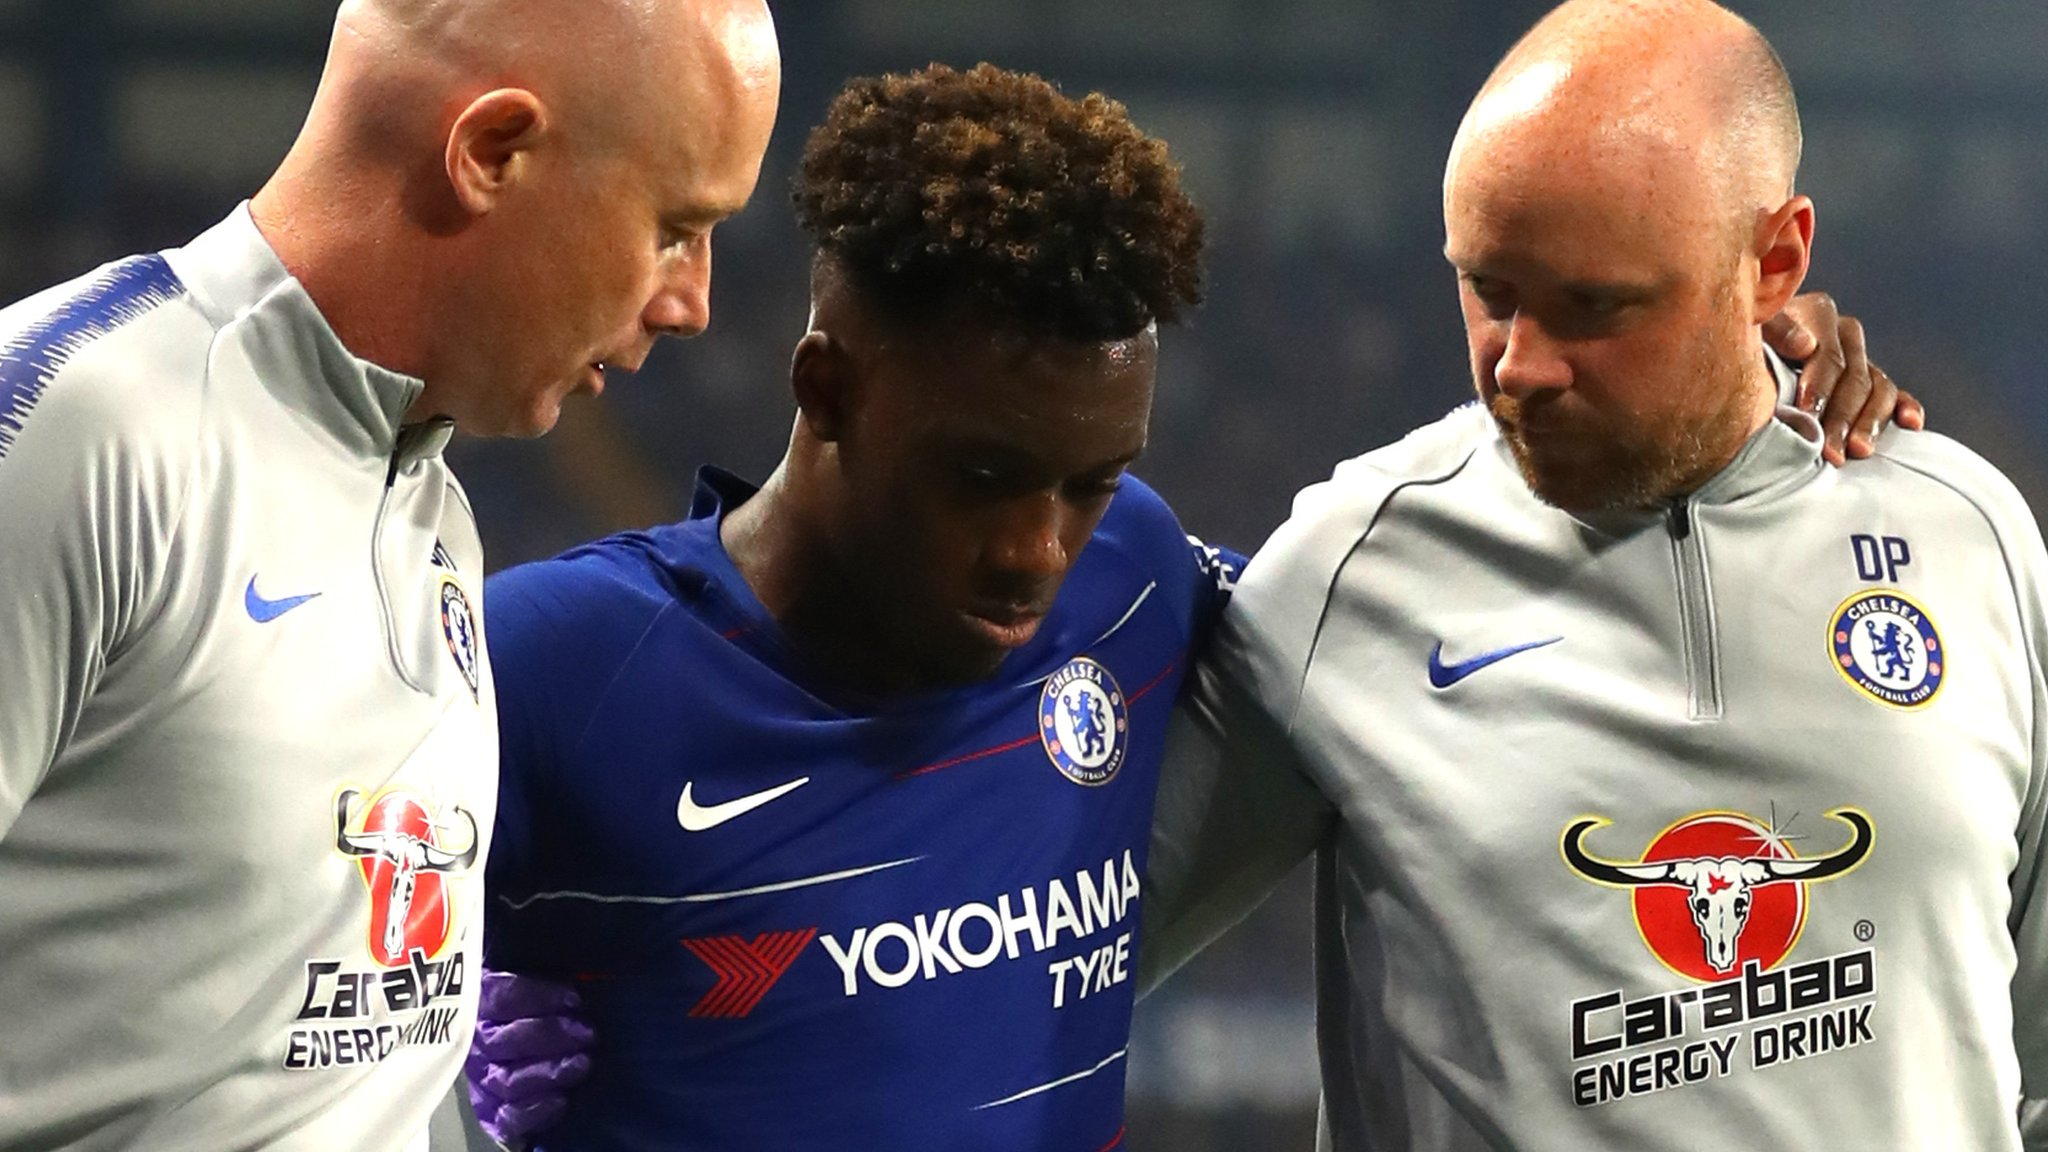 Chelsea's Hudson-Odoi out with ruptured Achilles